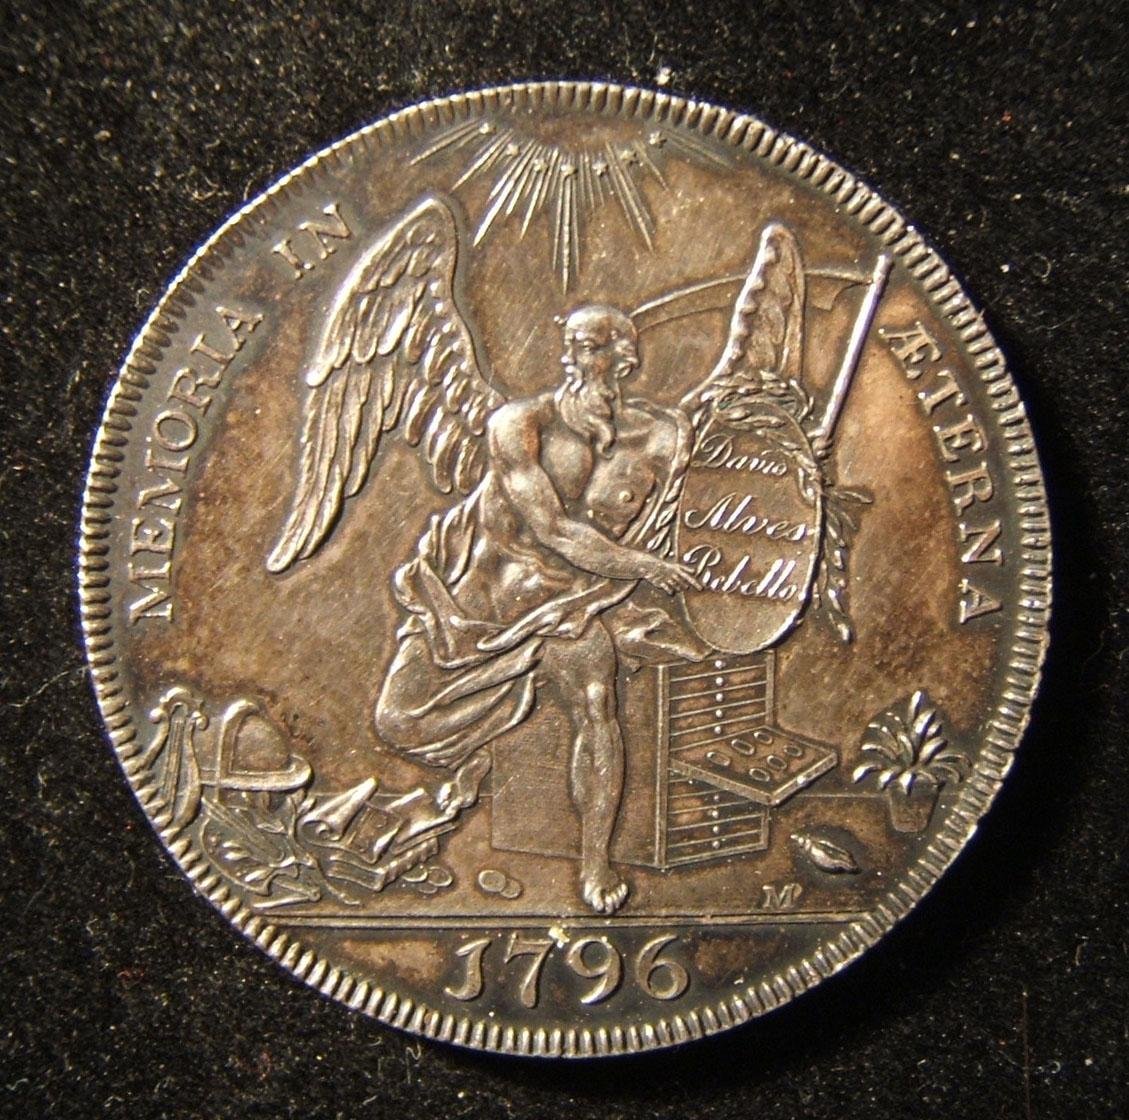 Great Britain: penny-sized Father Time medal of Rebello 1795 halfpenny token, 1796